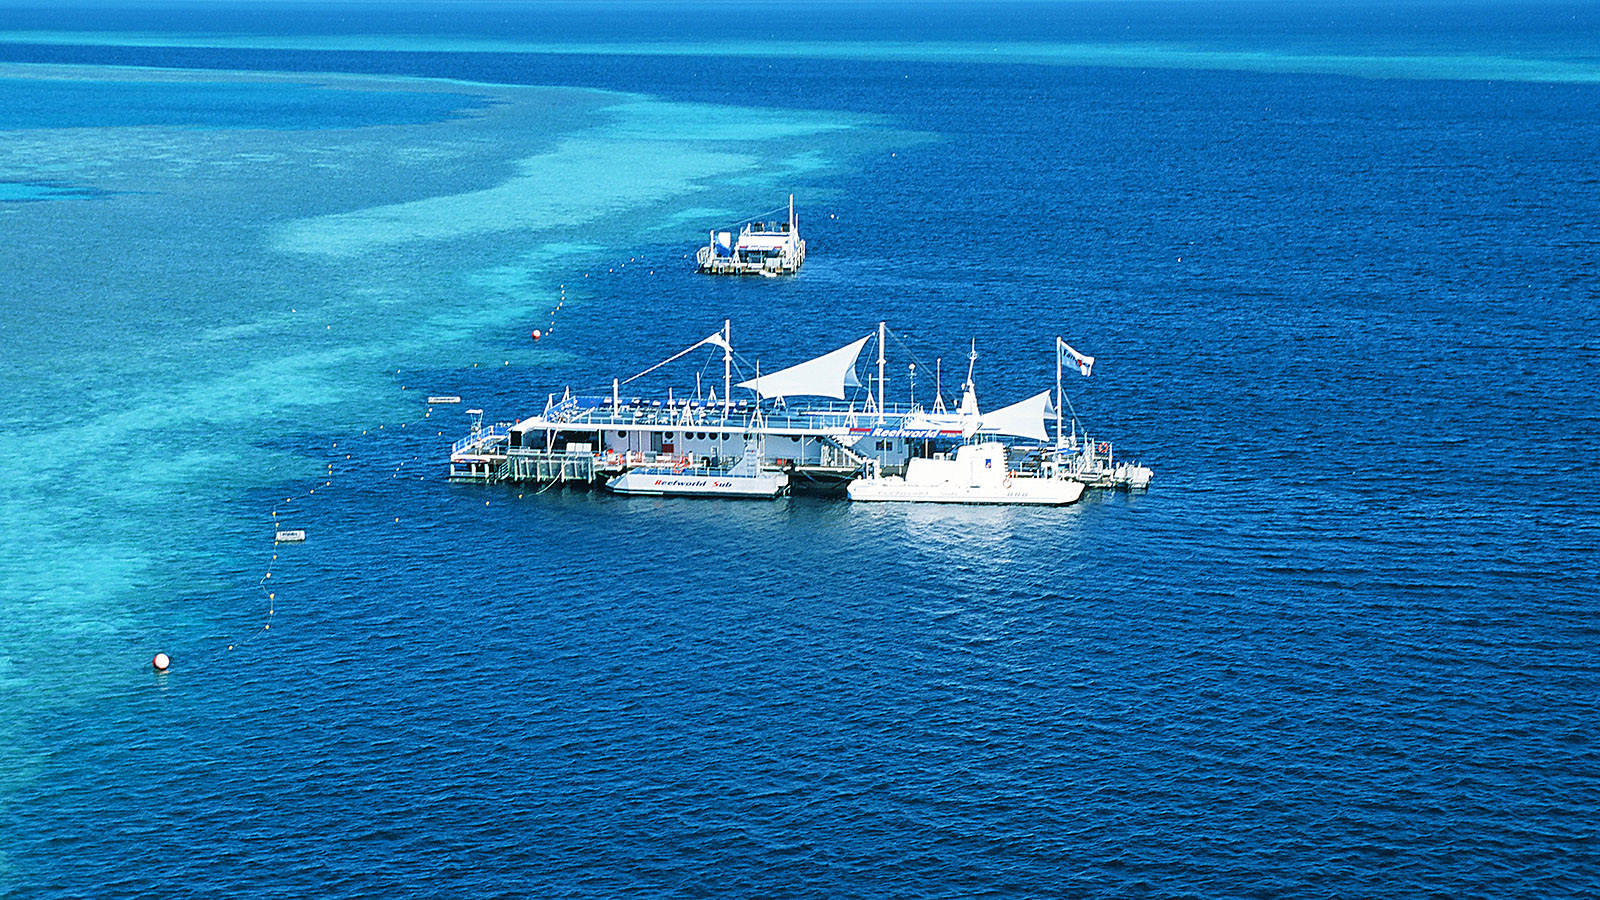 Whitsundays: Die Reefworld am Hardy Reef. Foto: Hilke Maunder